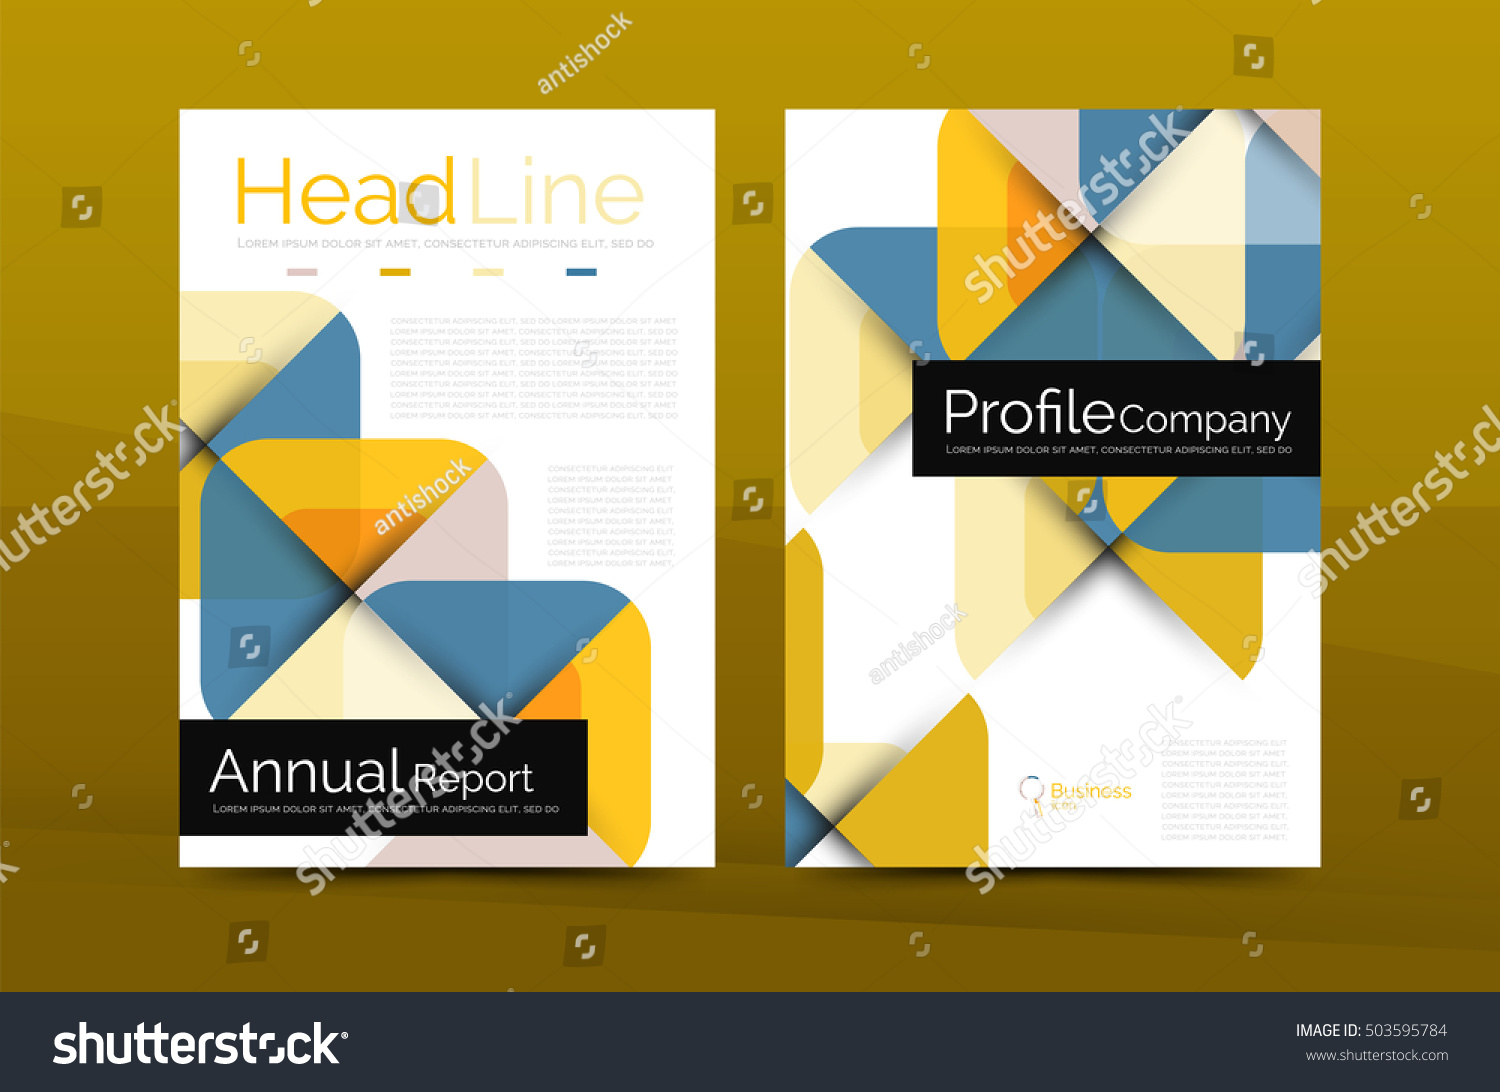 Business Company Profile Brochure Template Corporate Stock